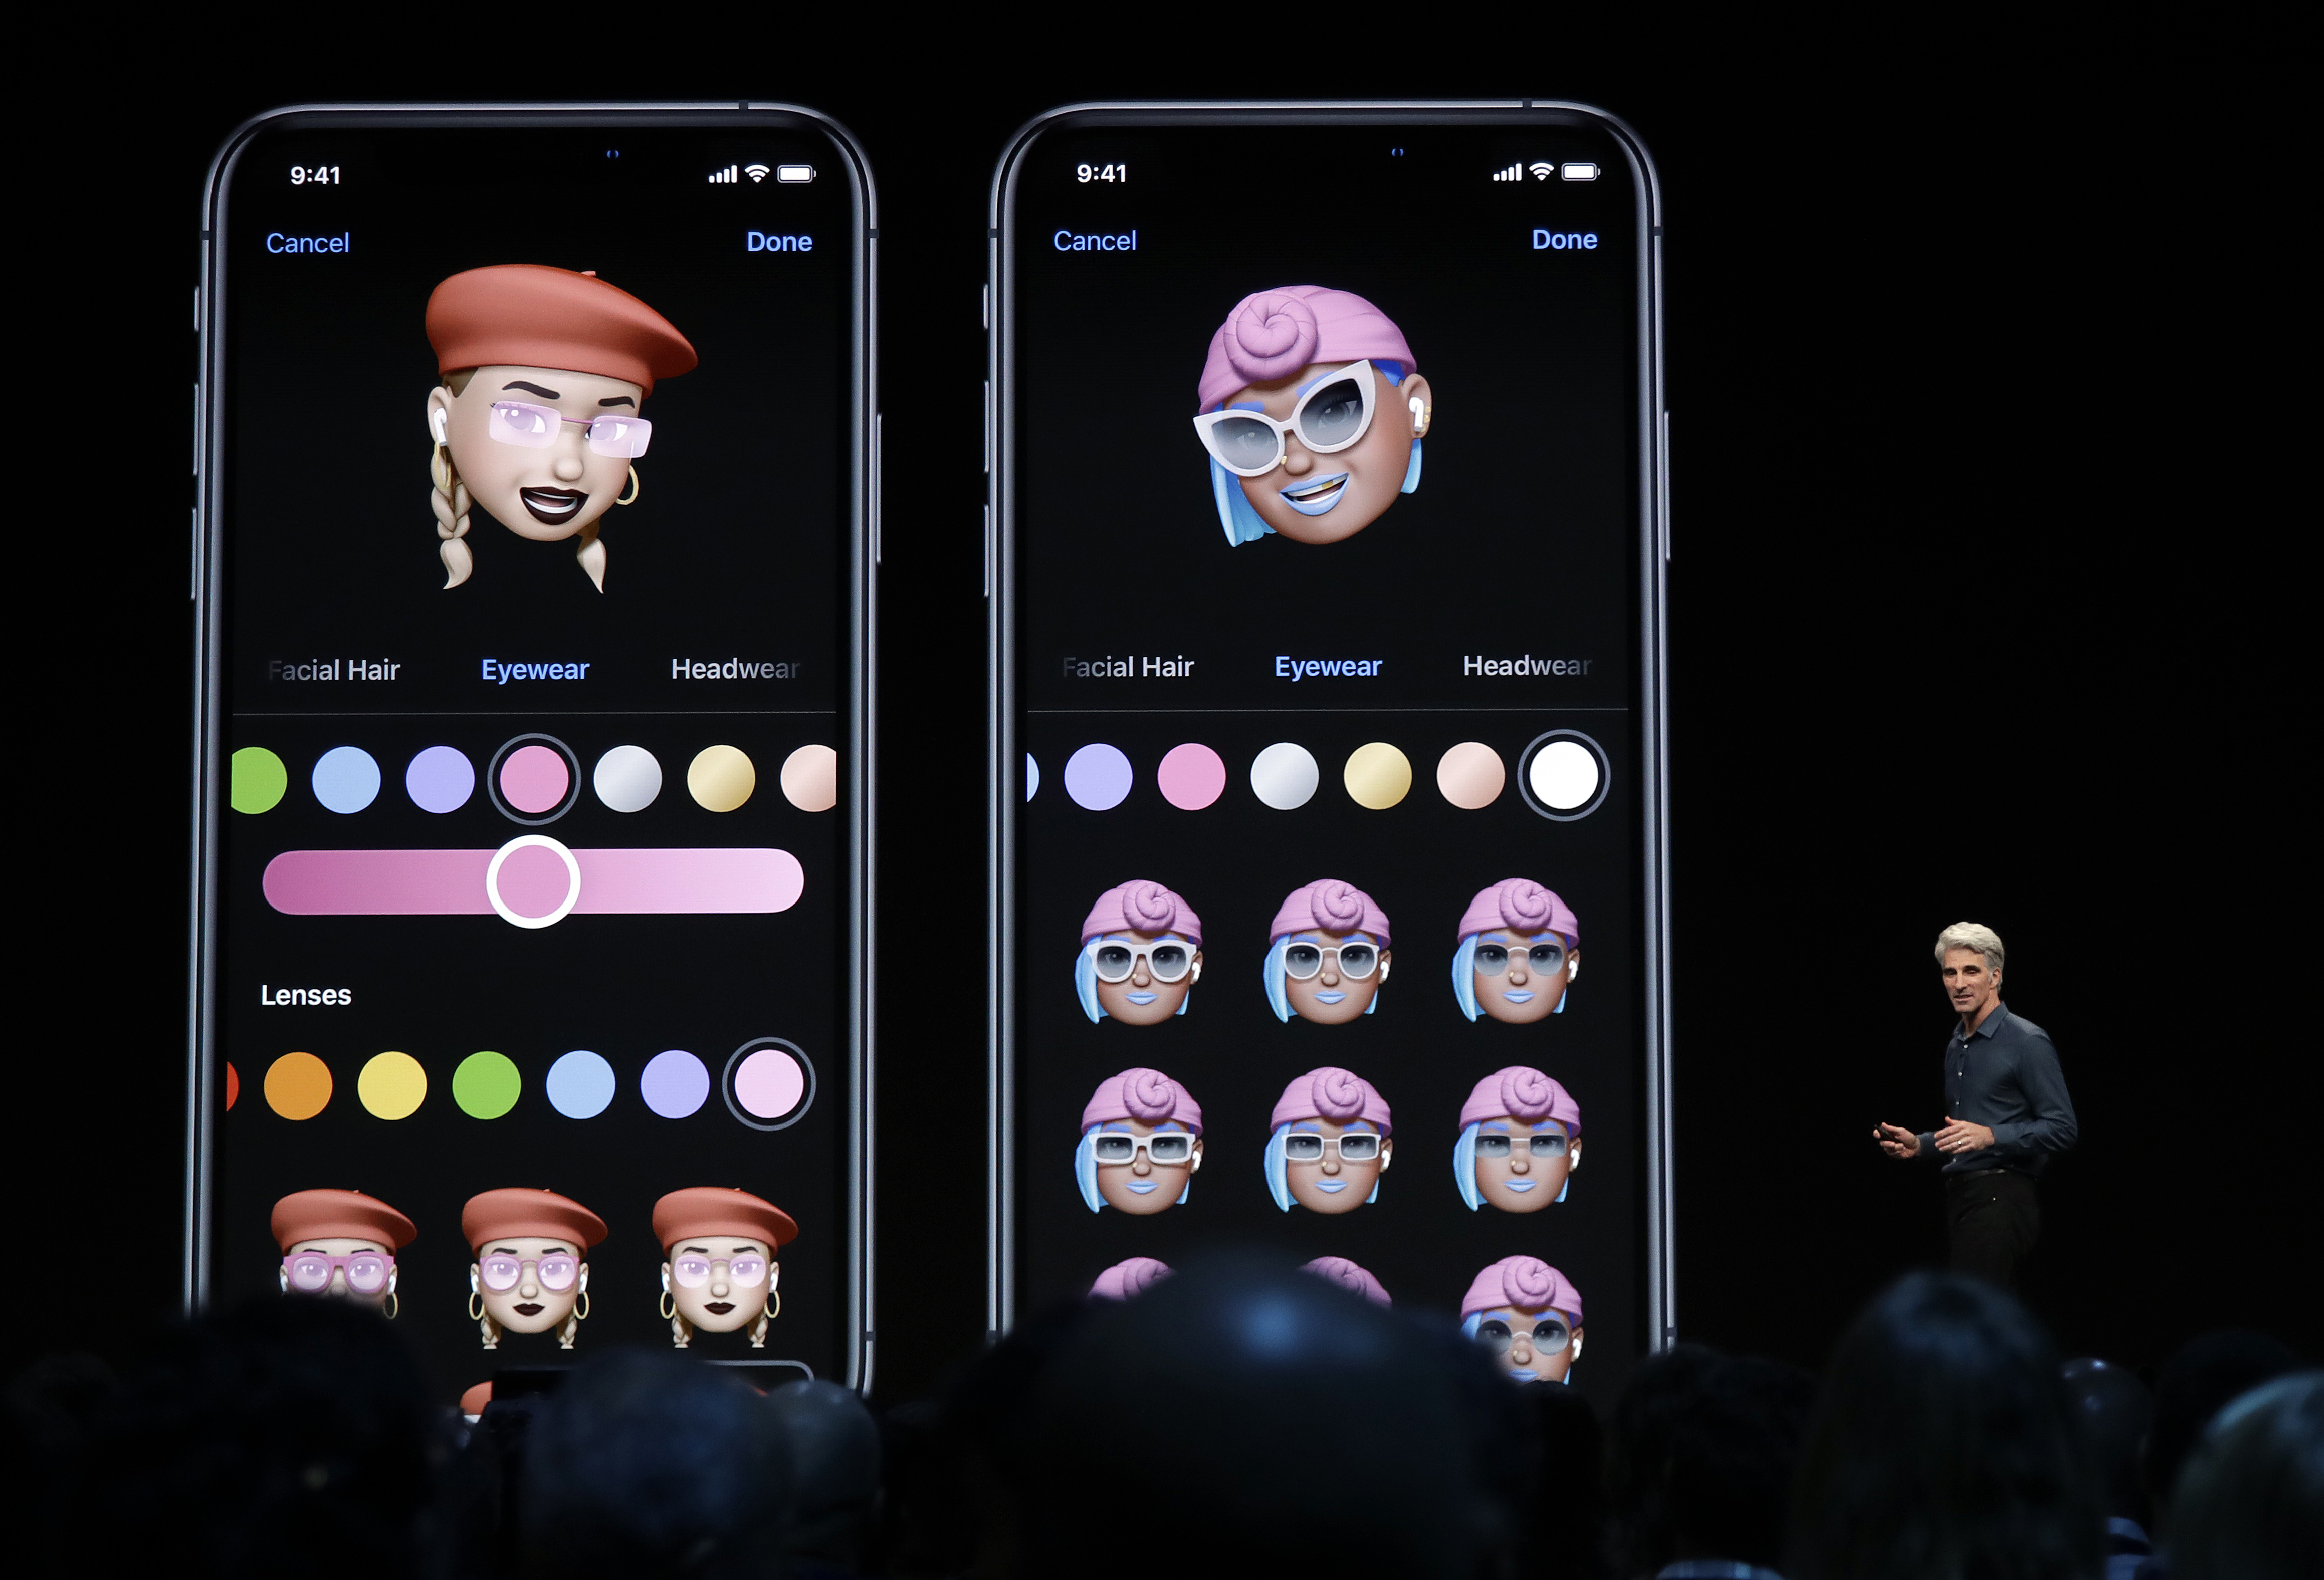 Apple WWDC 2019: the best iPhone, iPad, Mac and Apple Watch